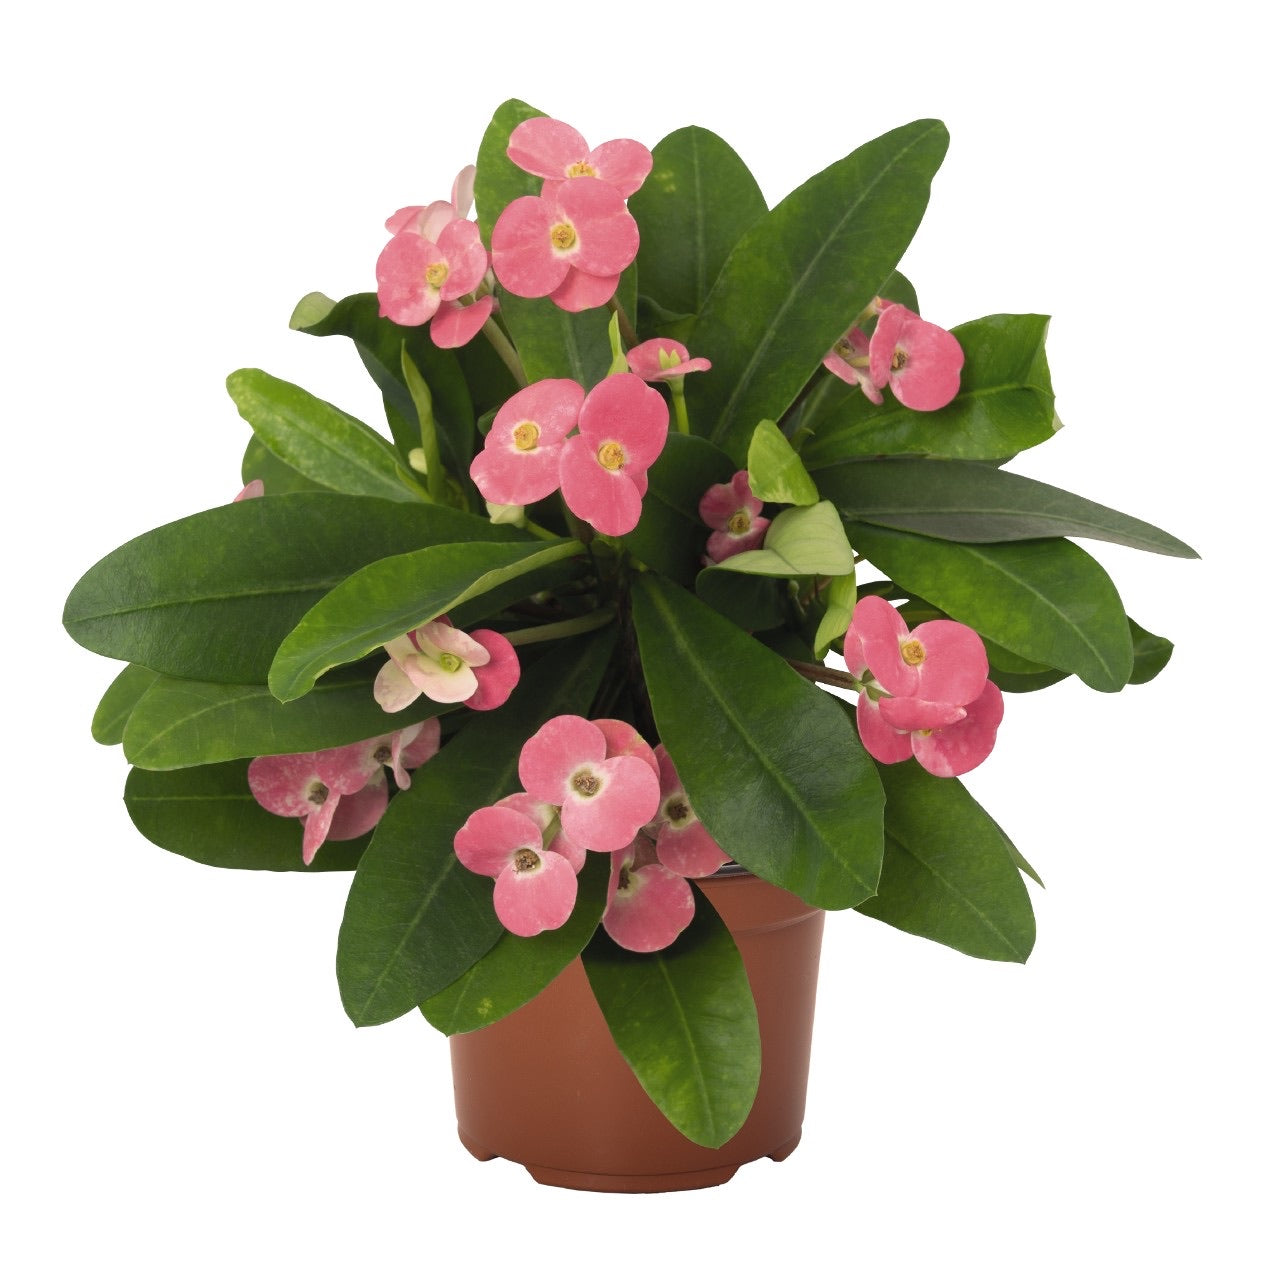 Euphorbia milii 'Pink Cadillac' (Crown of Thorns)